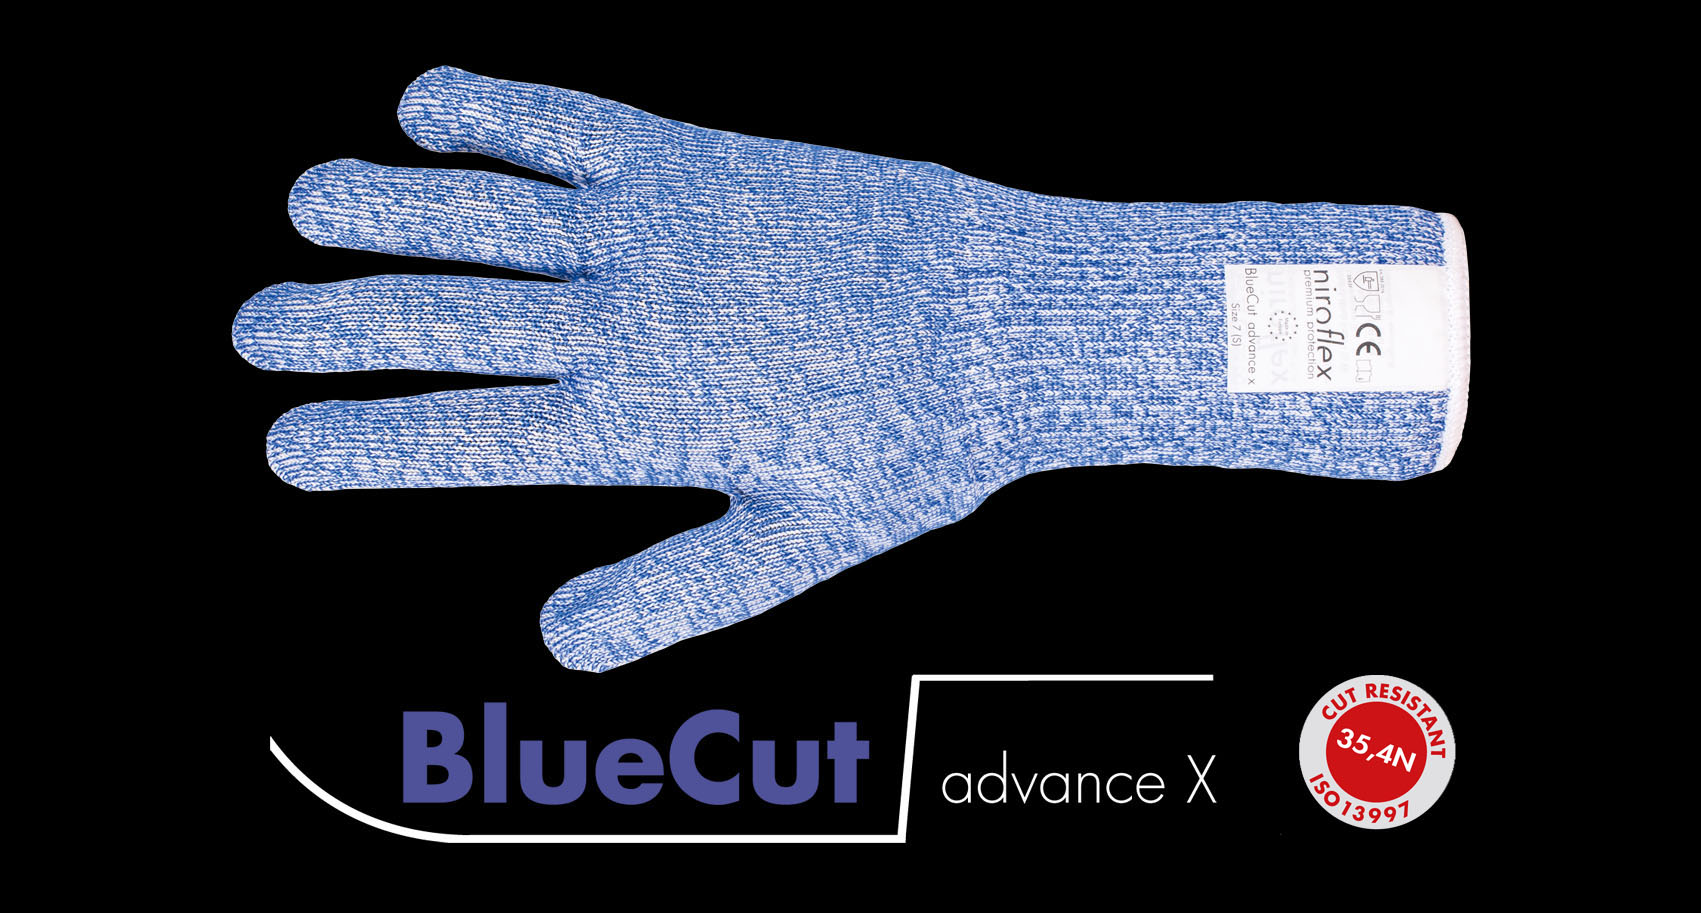 BlueCut advance X,